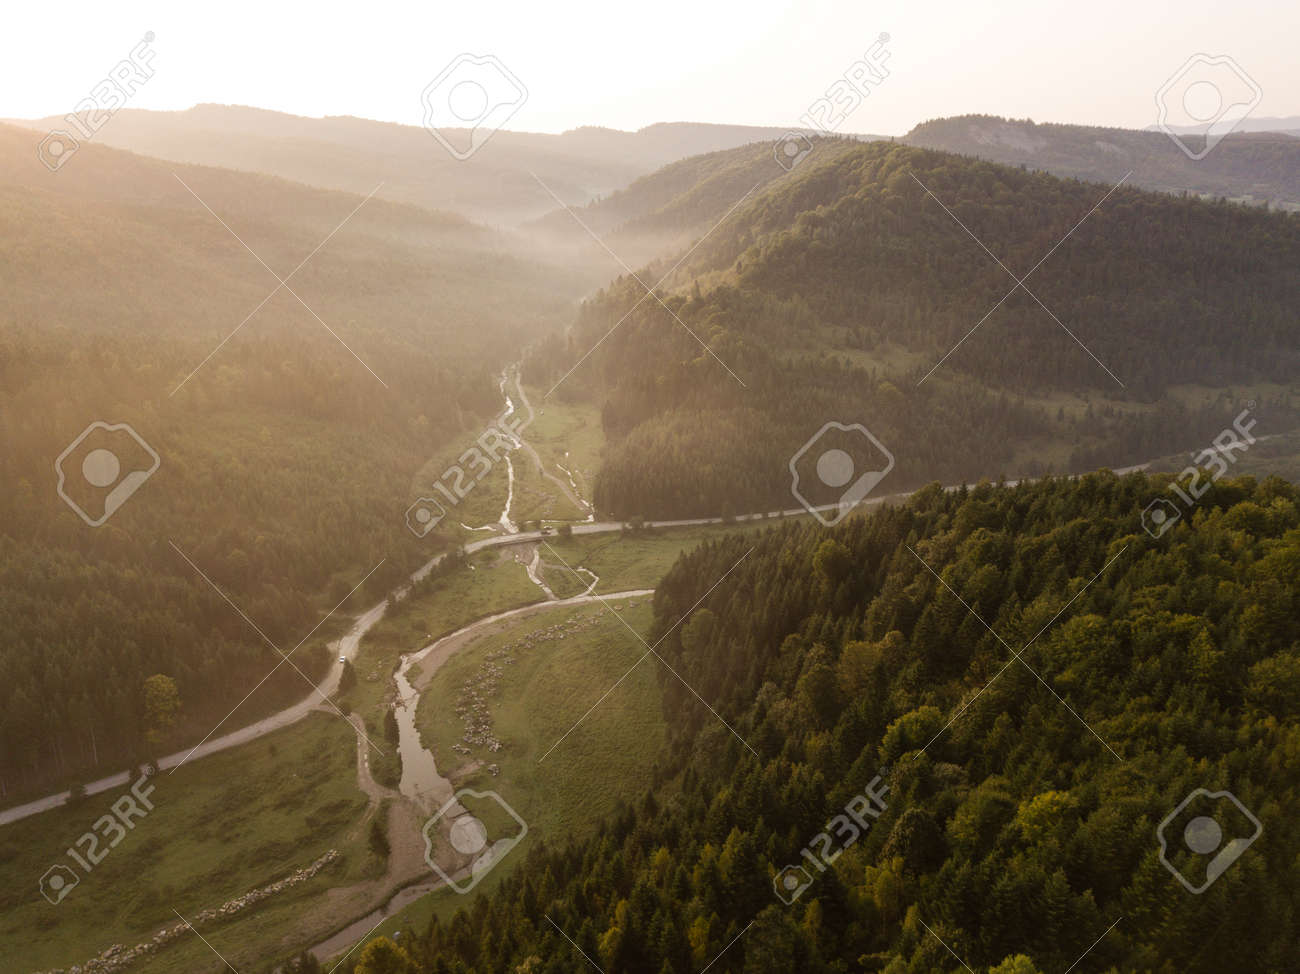 Spectacular aerial view to road with moutains captured from above at sunrise, carpathians mountains - 167297947